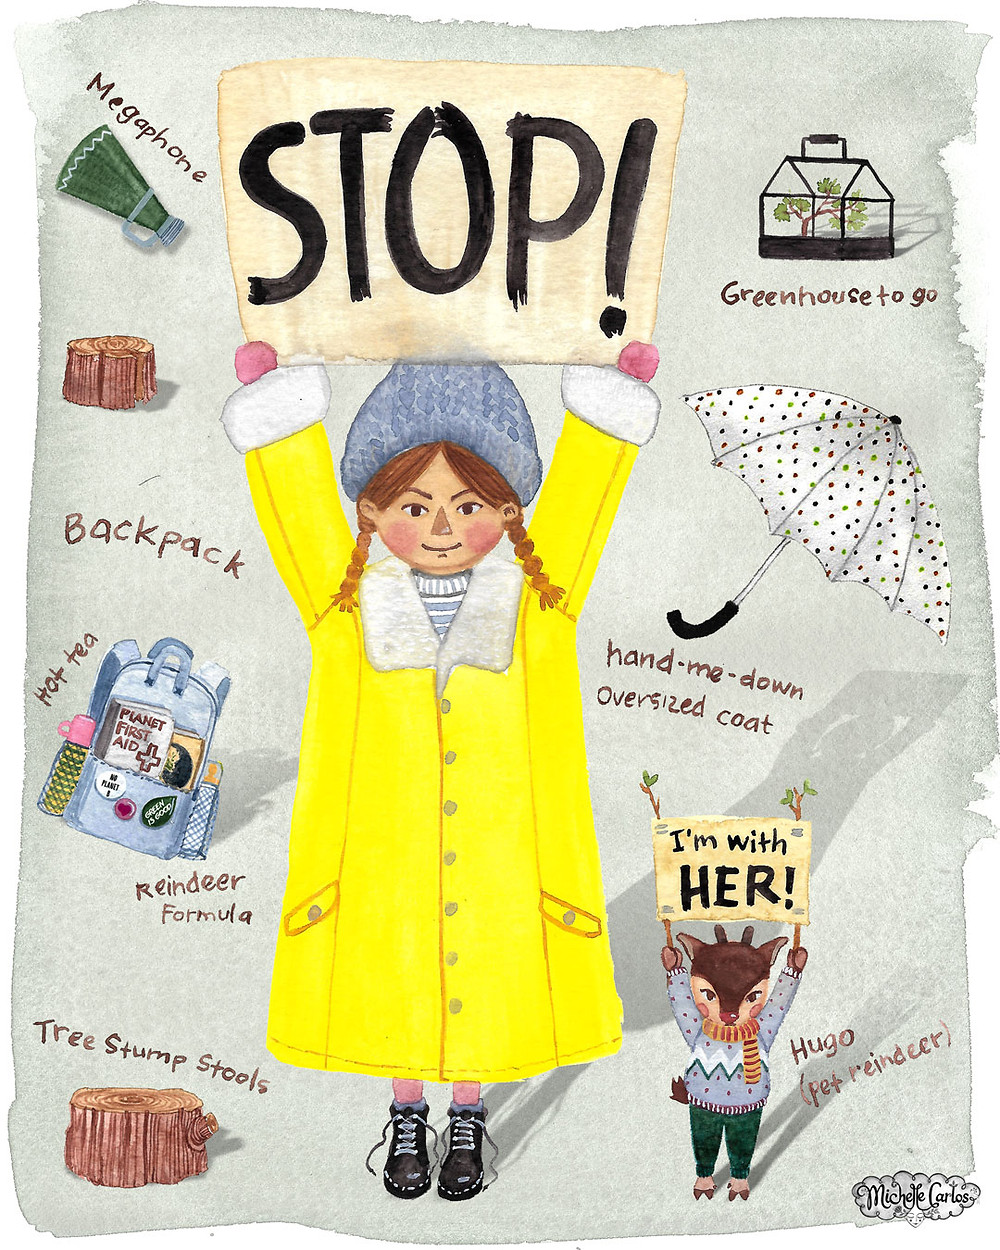 Girl holding a Stop! sign